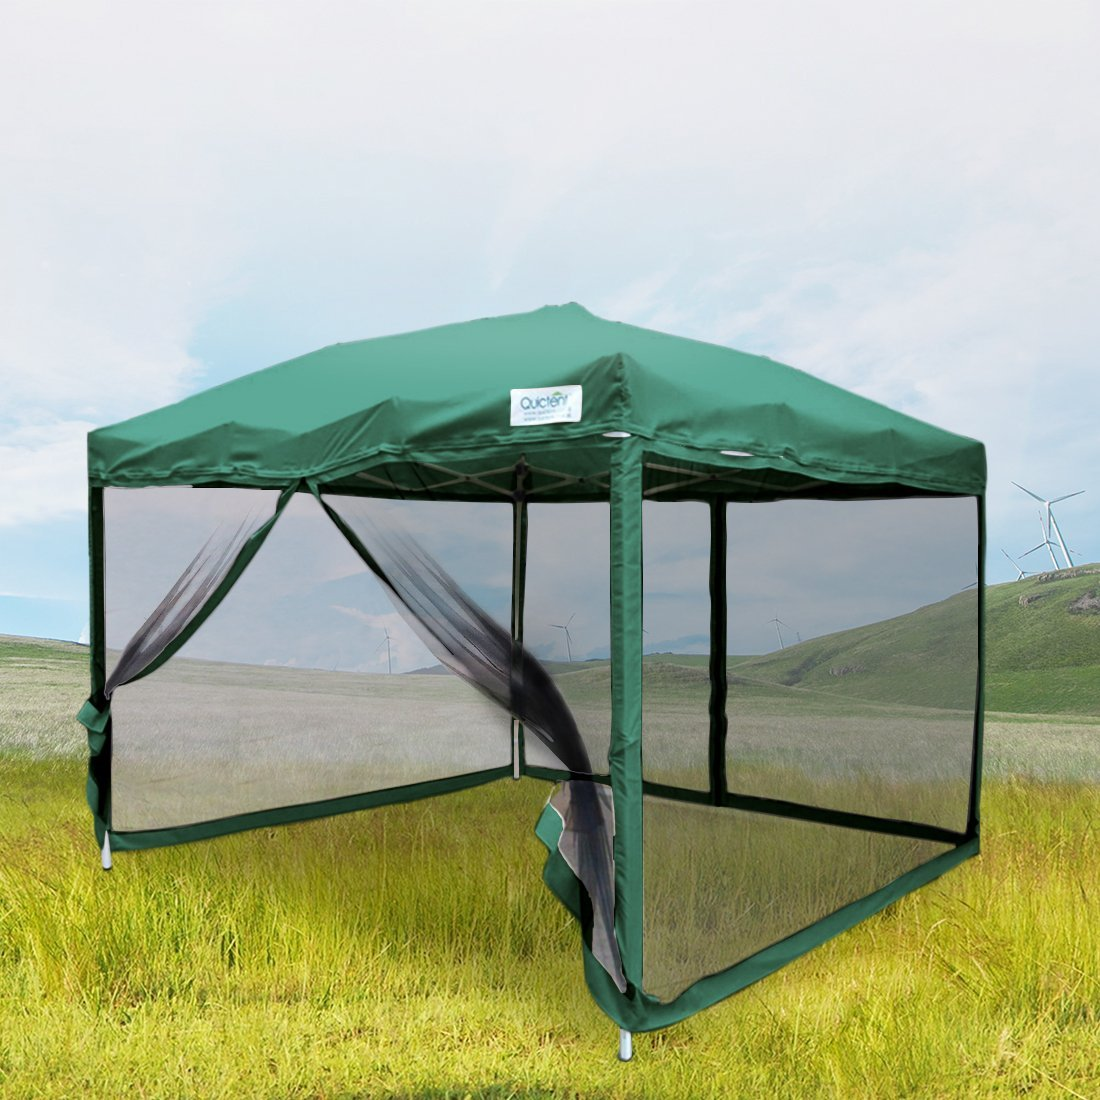 Quictent 10x10 Ez Pop up Canopy with Netting Screen House Instant Gazebo Party Tent Mesh Sides Walls With Carry BAG Tan by ML